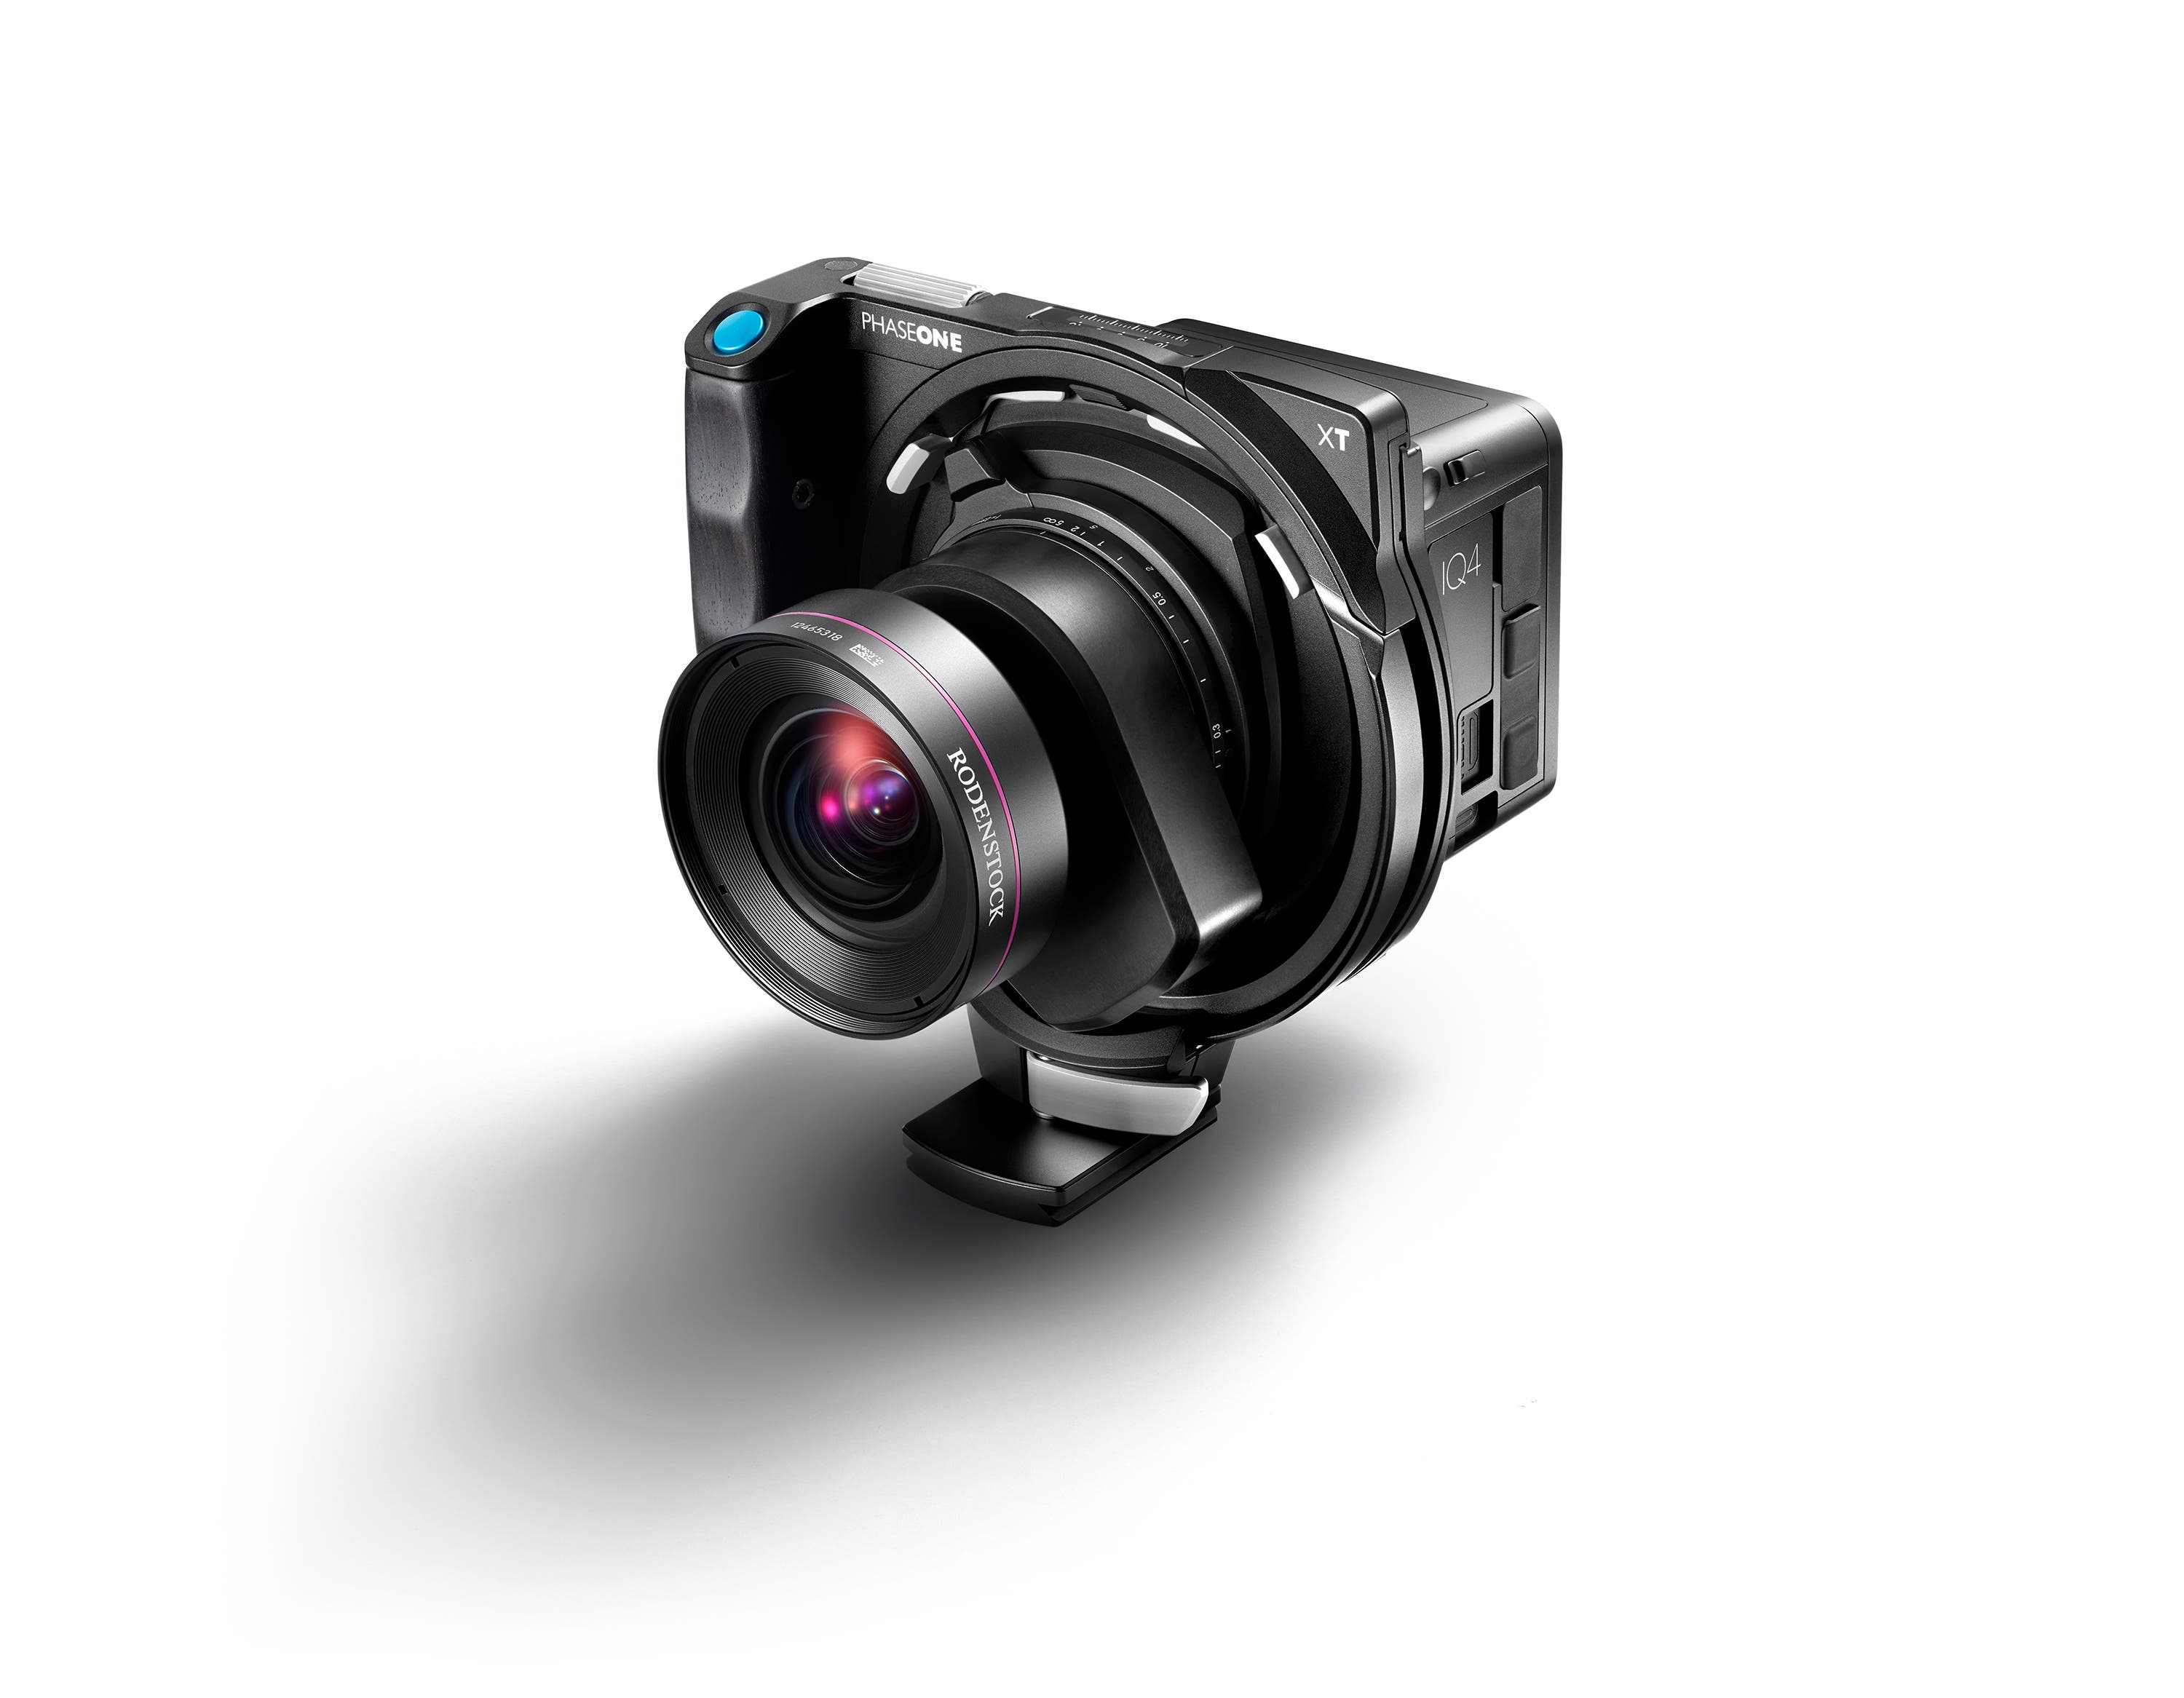 The 150 Megapixel Phase One XT Camera Travels Well for $56,900